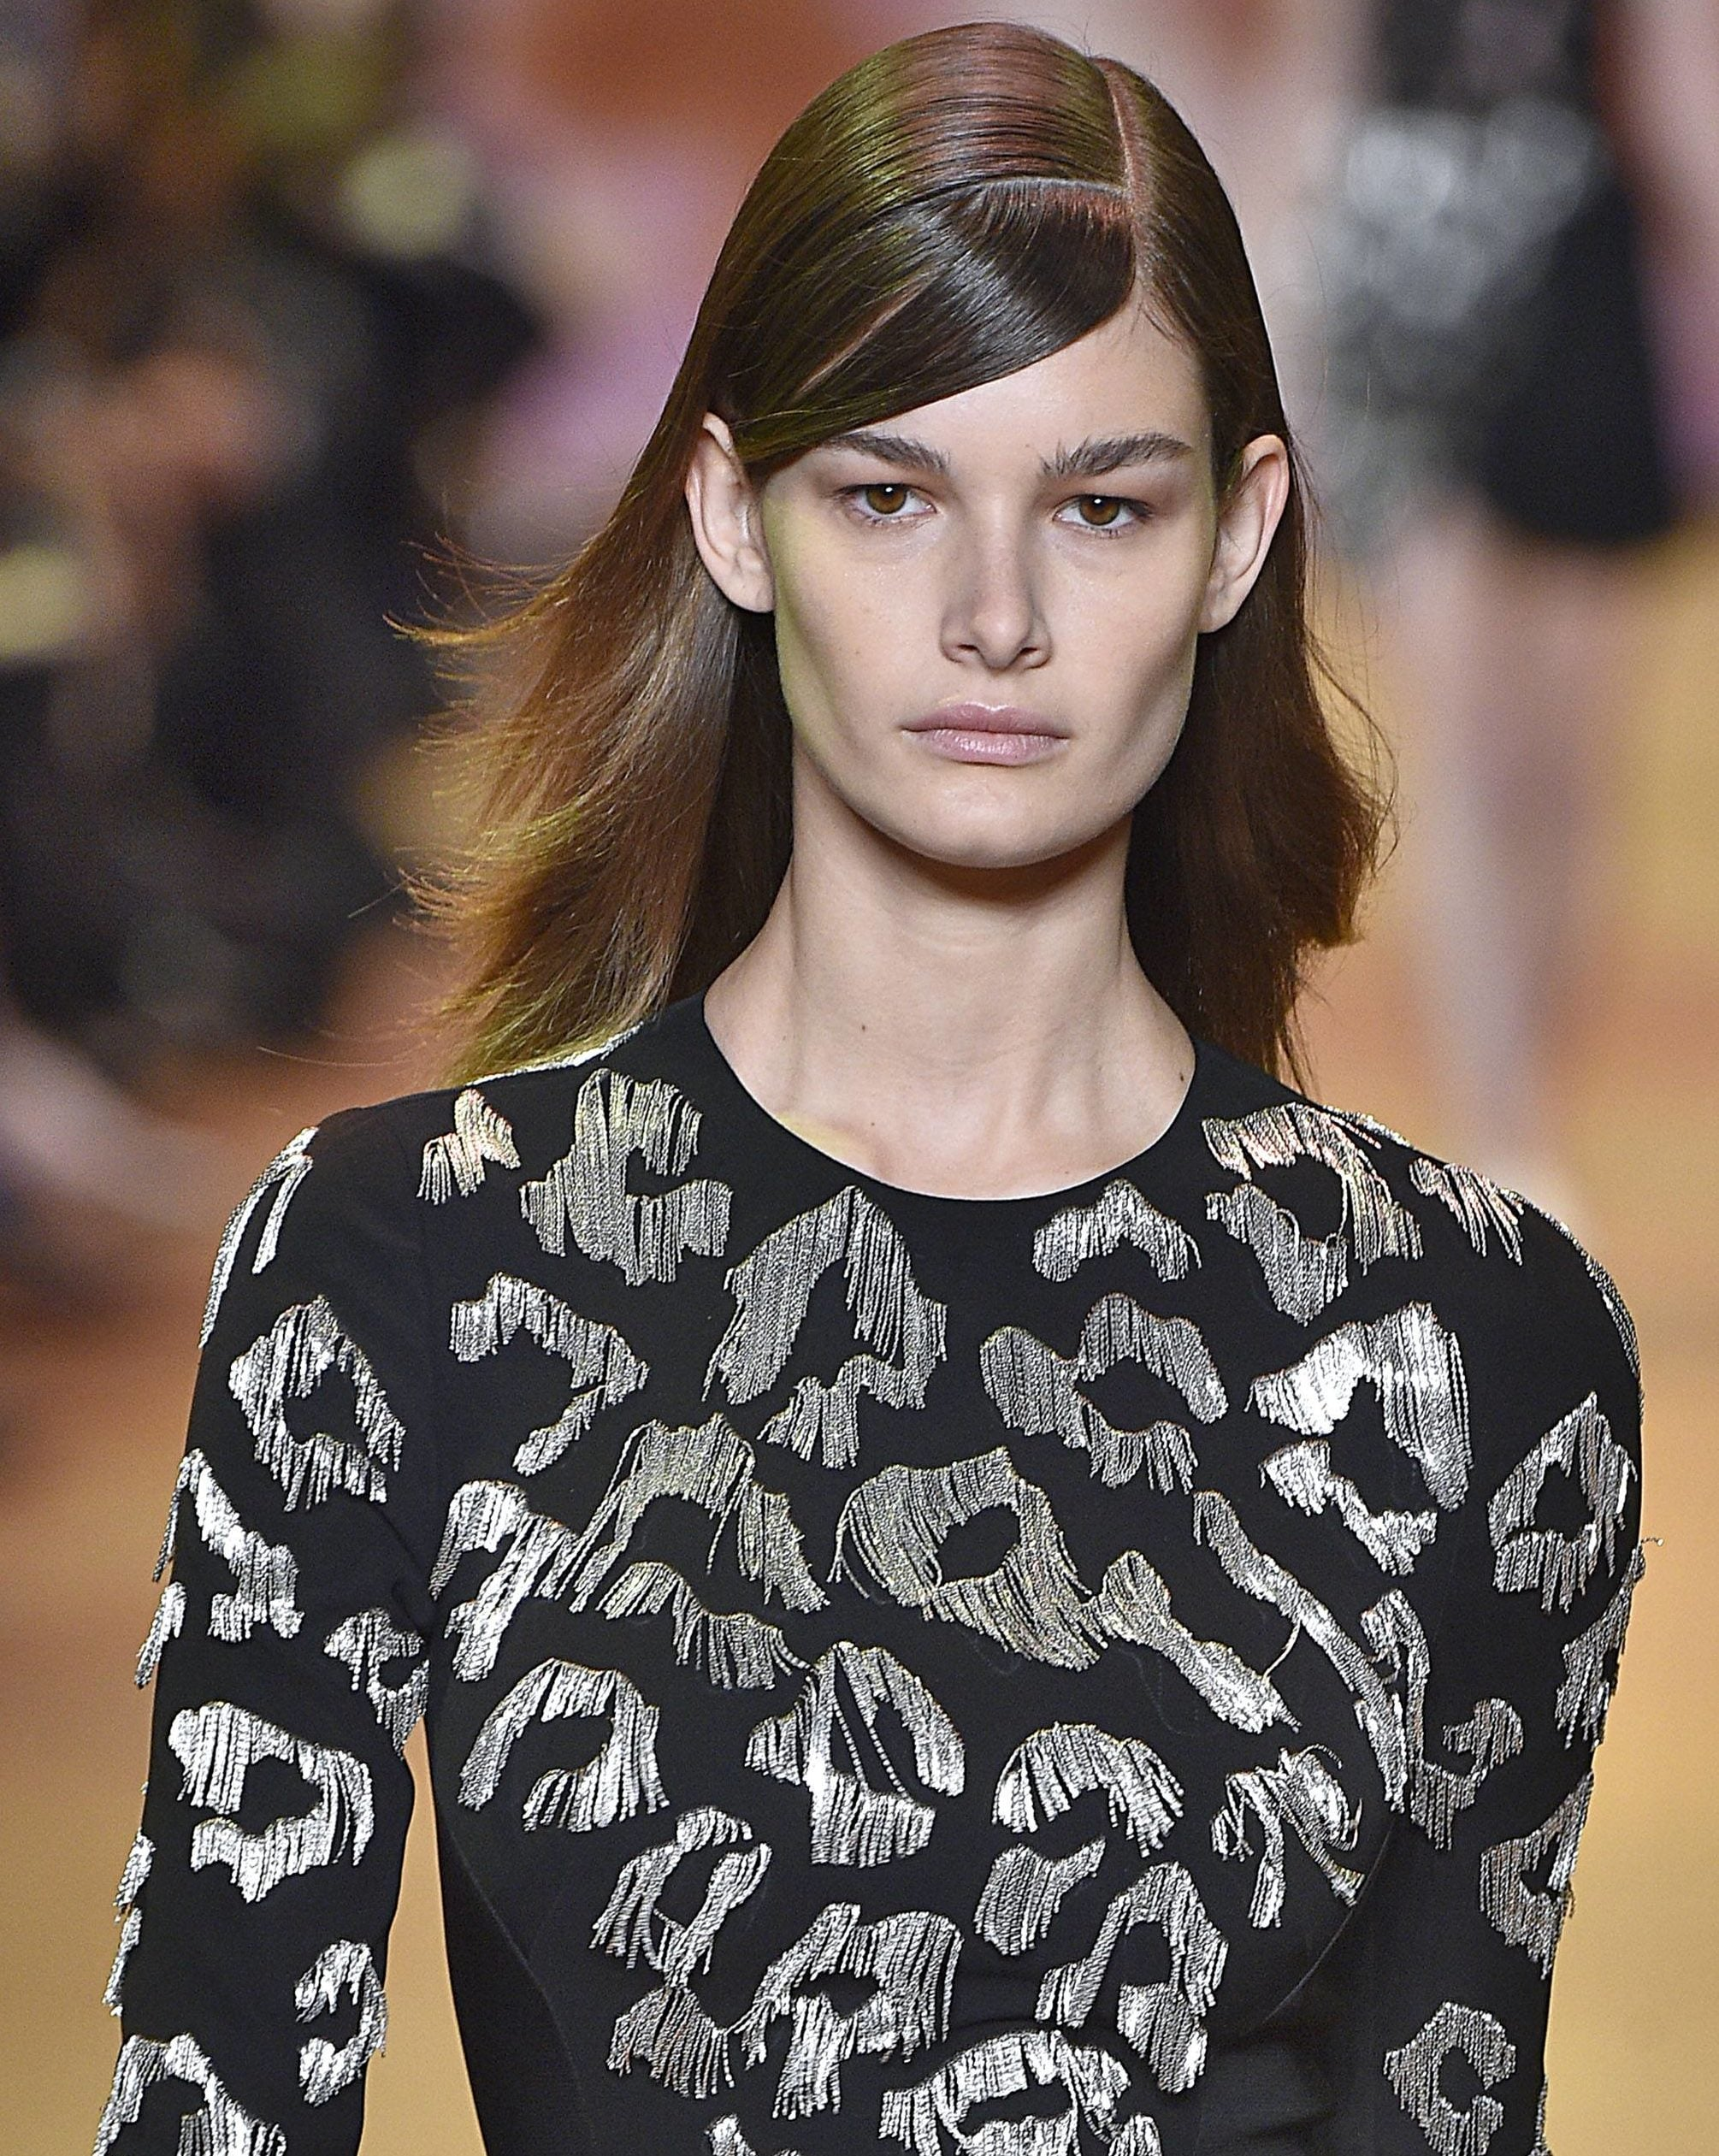 Hair parting: Mugler dark brown hair with side parting and parted fringe